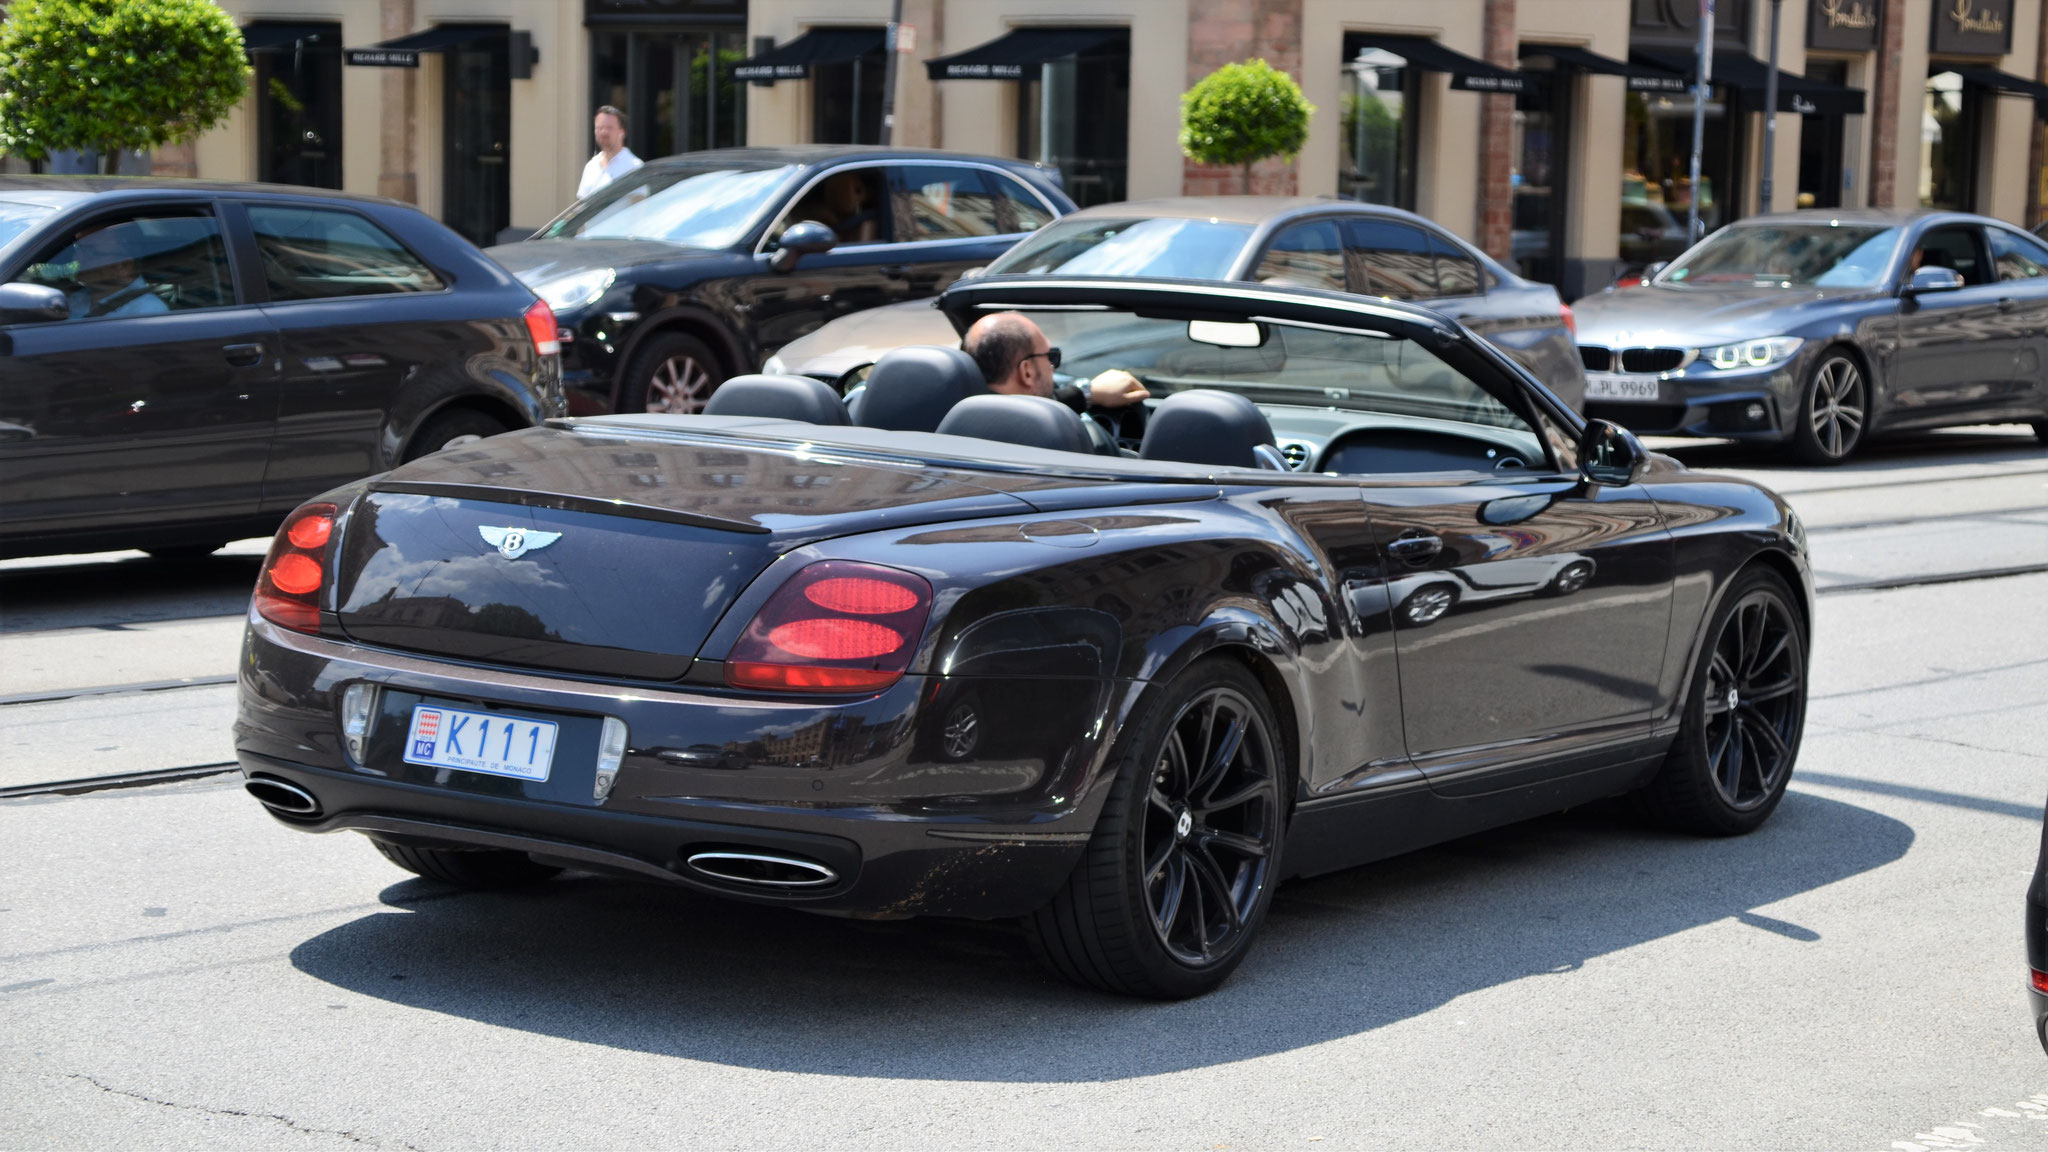 Bentley Continental GTC Supersports - K111 (MC)